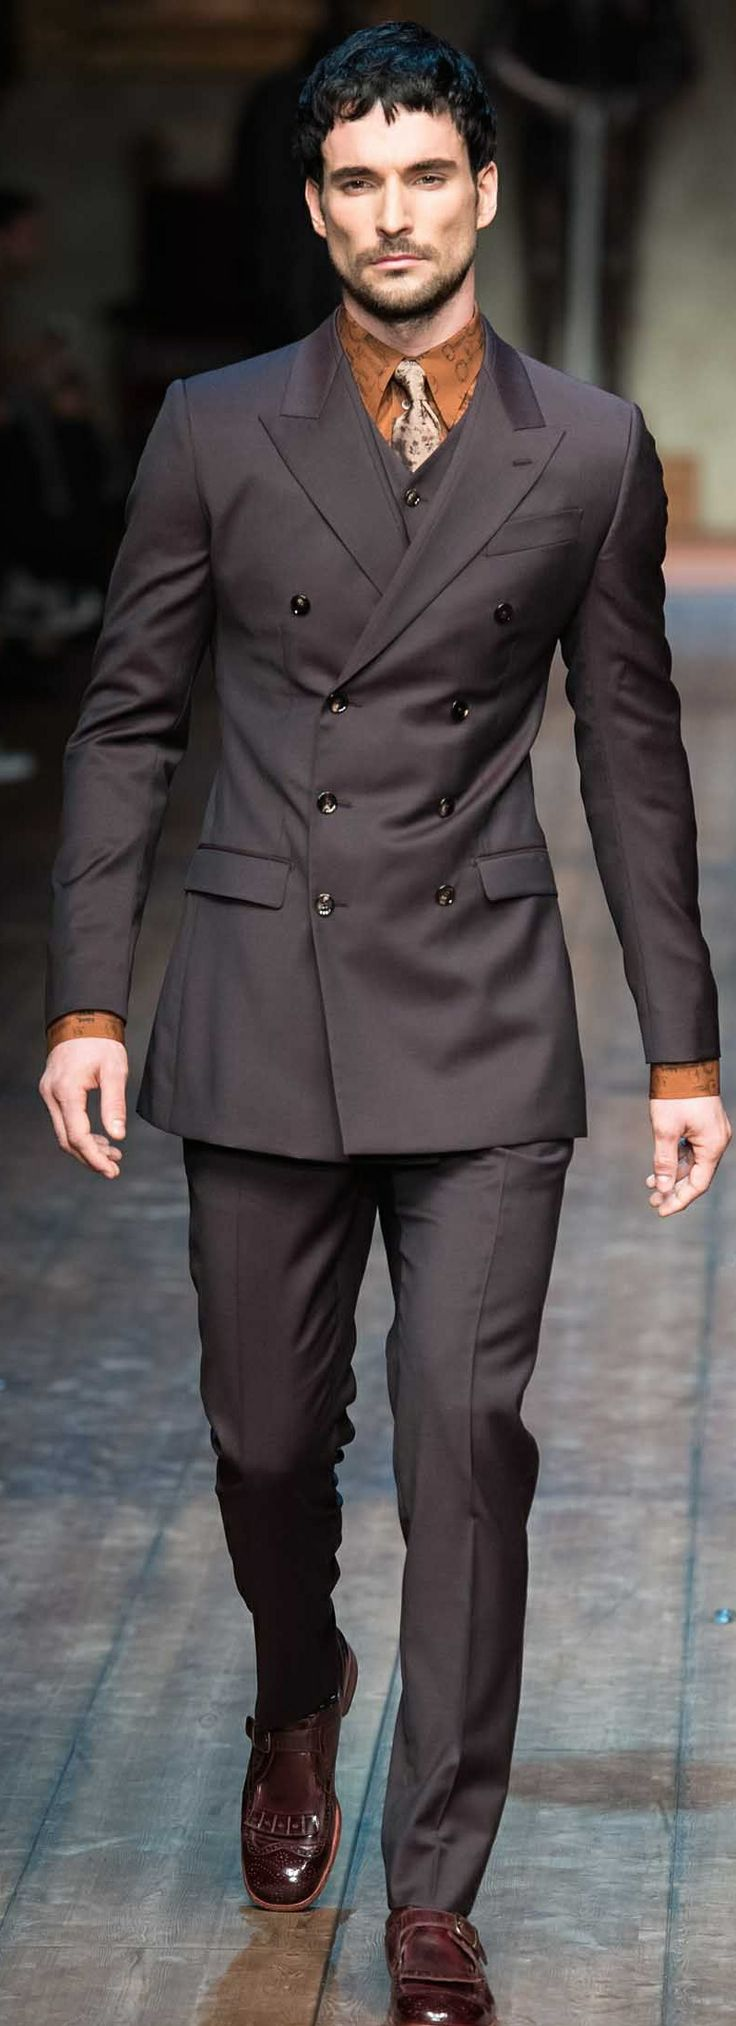 Dolce Gabbana FW 2014-2015 | toxido | Pinterest | Suit styles, Fashion and Sharp dressed man